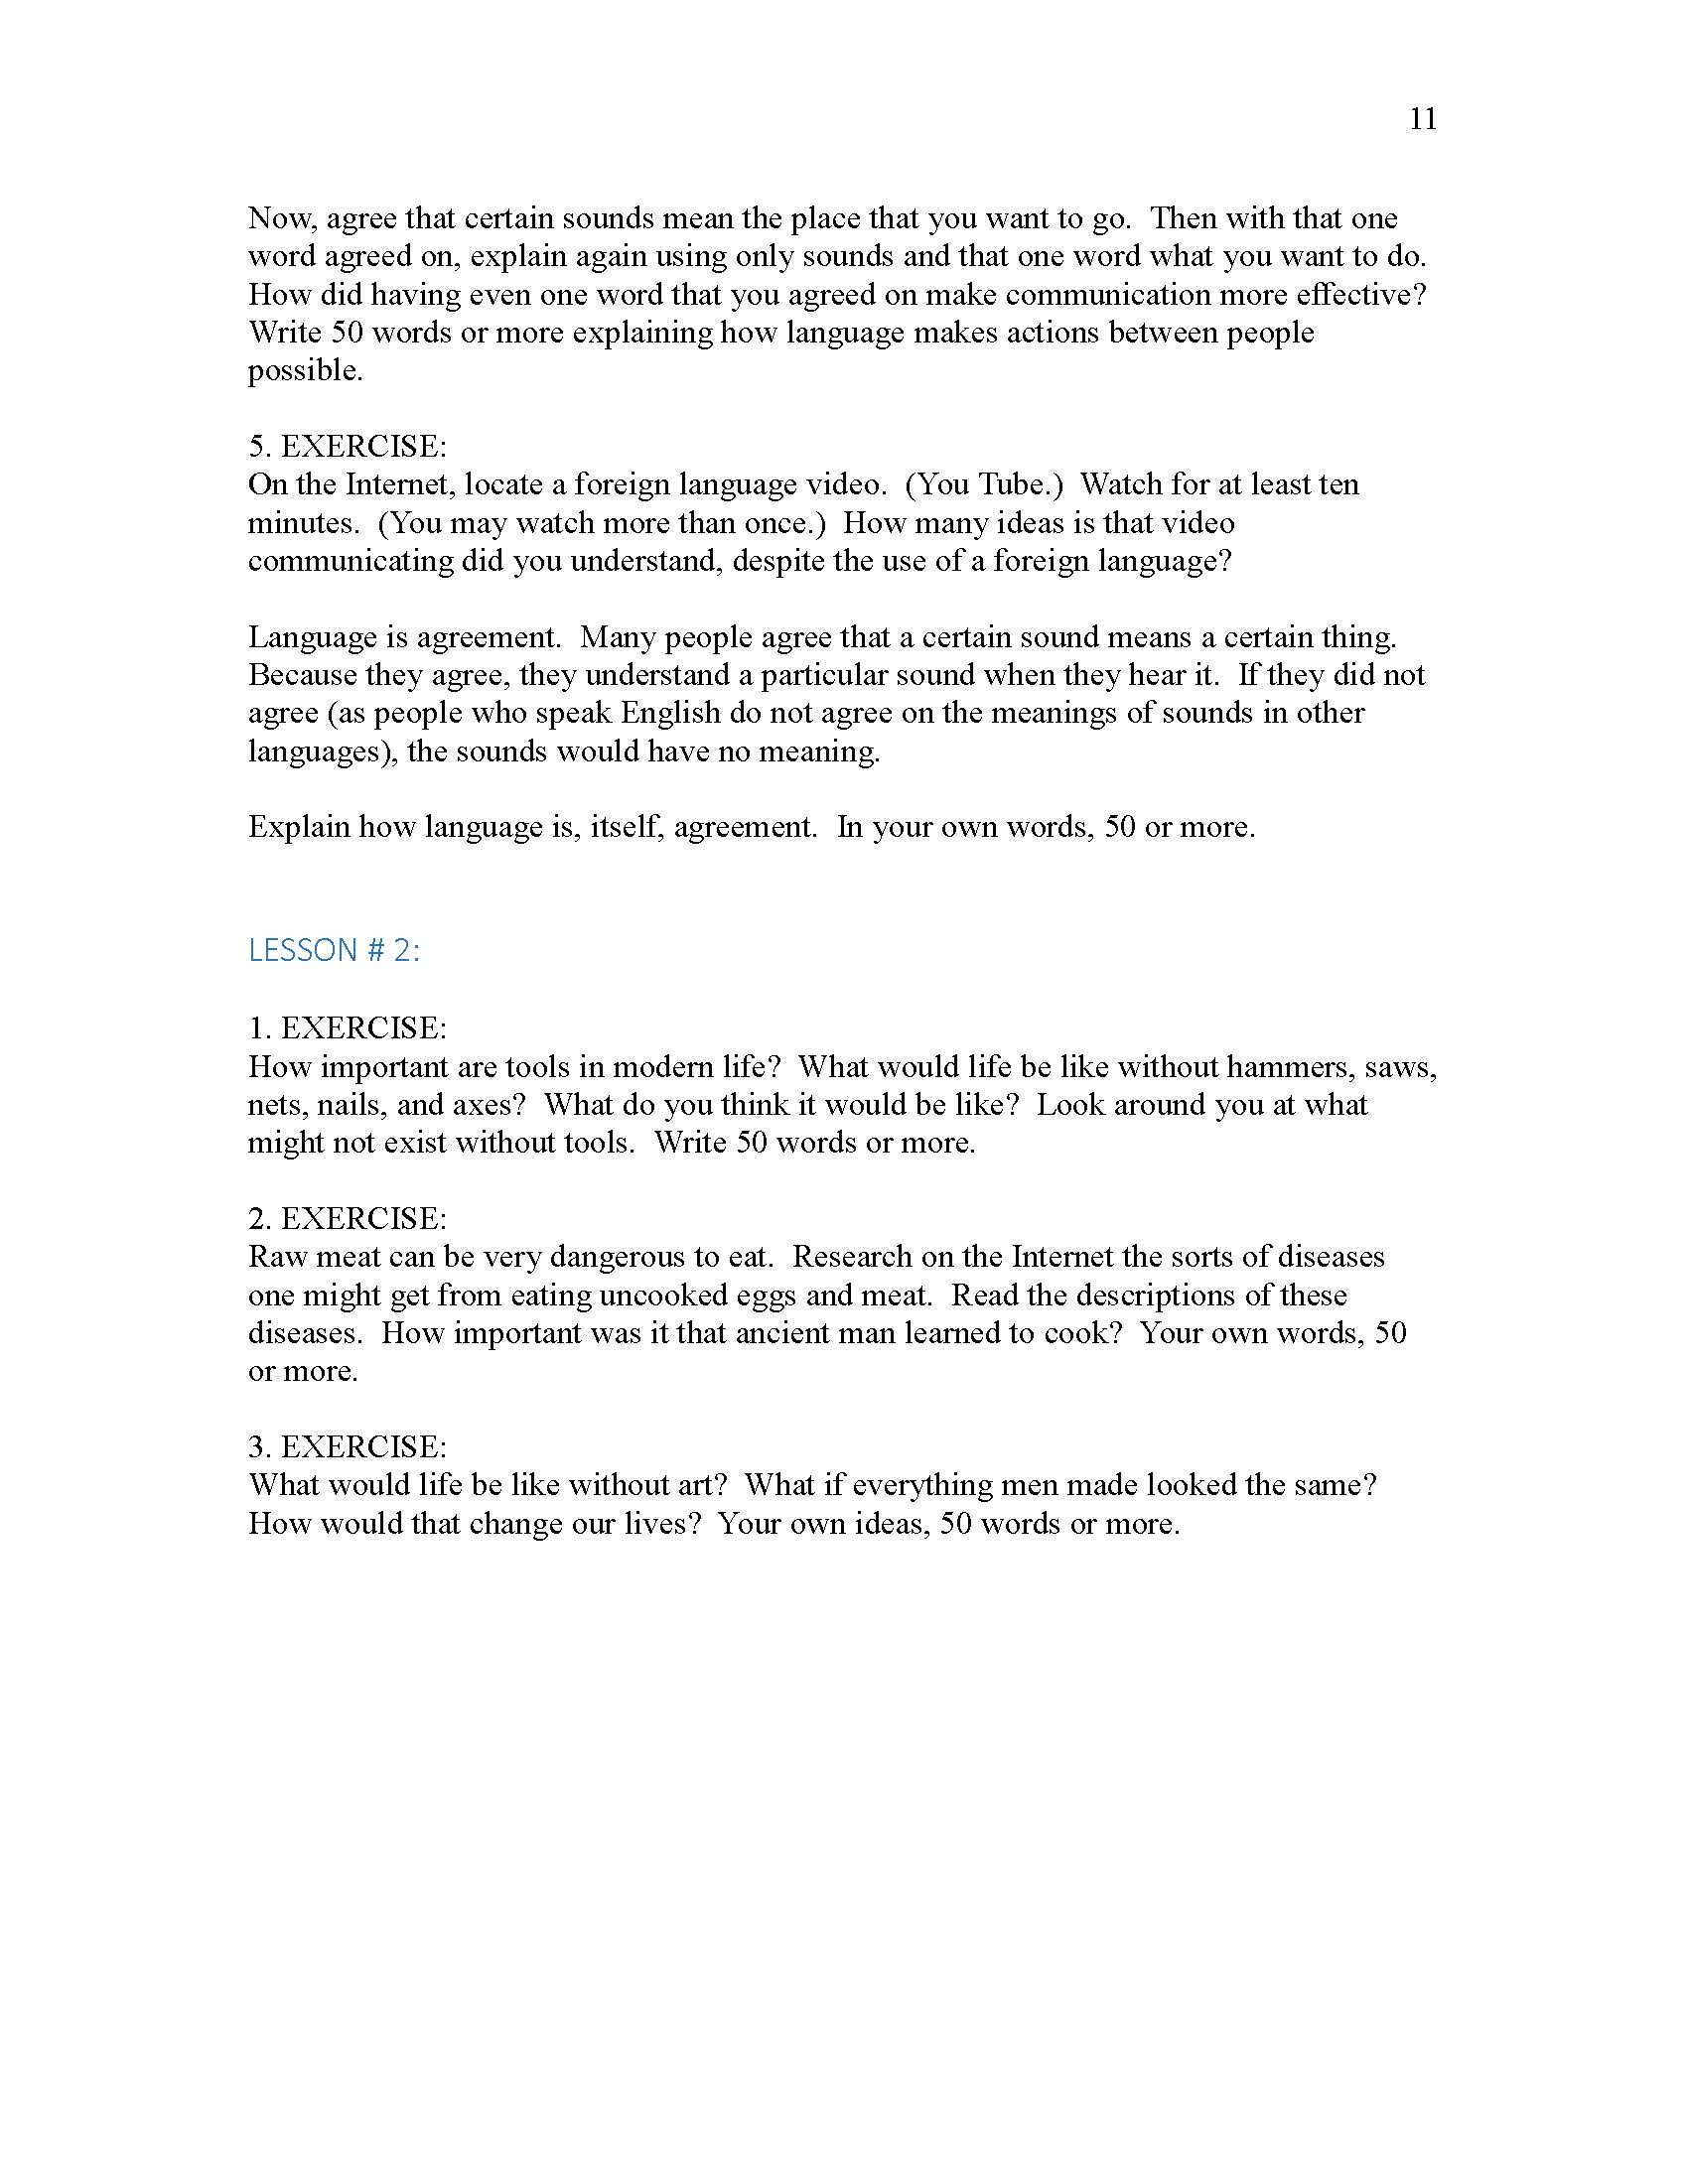 Step 4 History 2 - Early Civilizations_Page_012.jpg